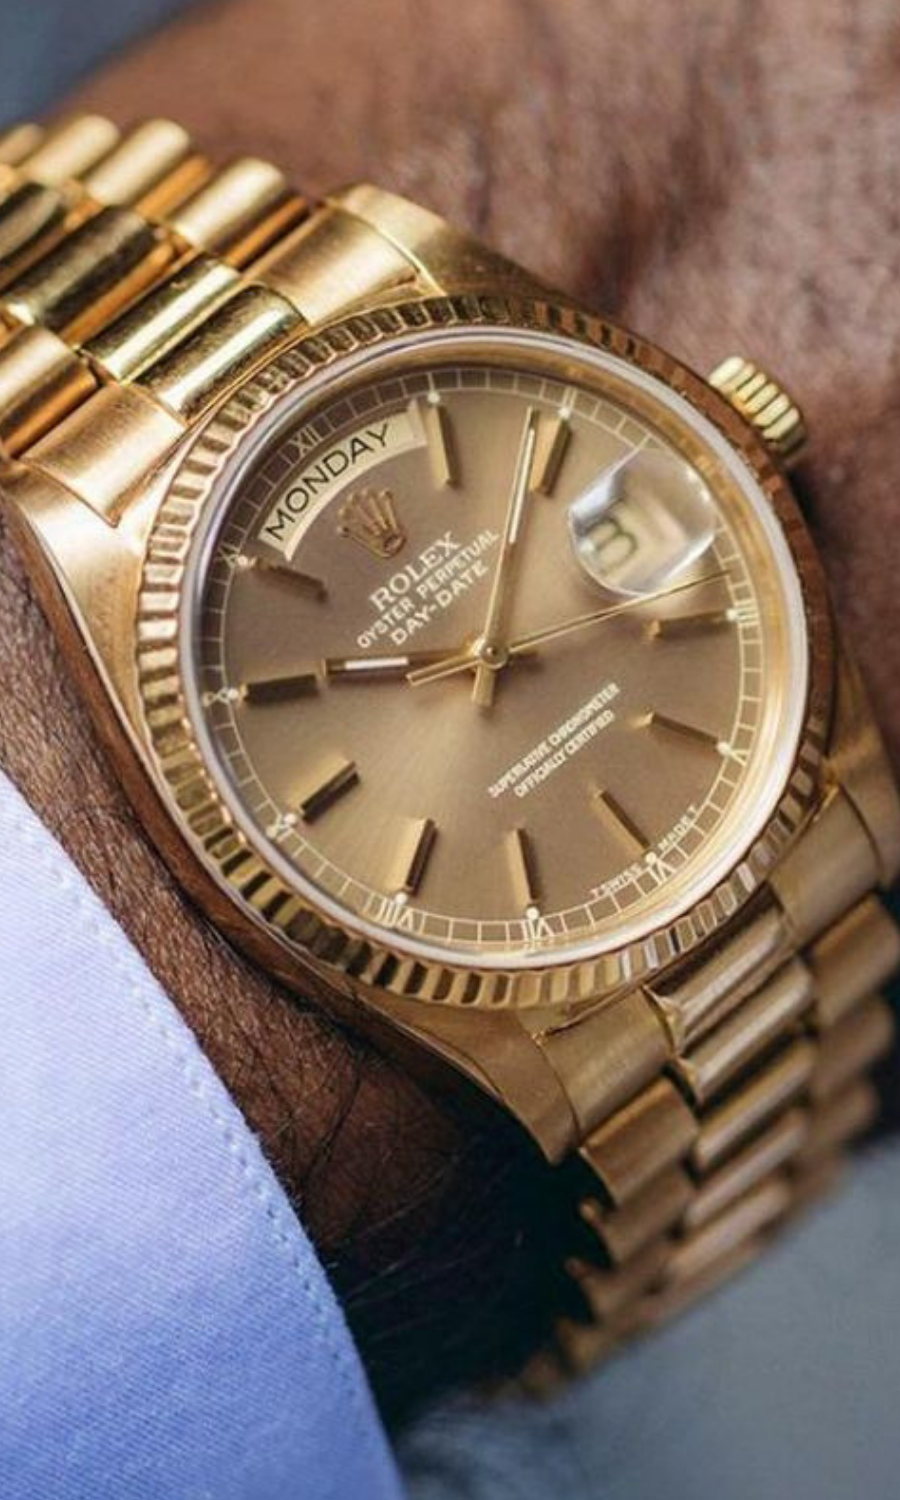 Rolex Watches for Men Awesome rolex watches for men with full day calendar. This watch has self win